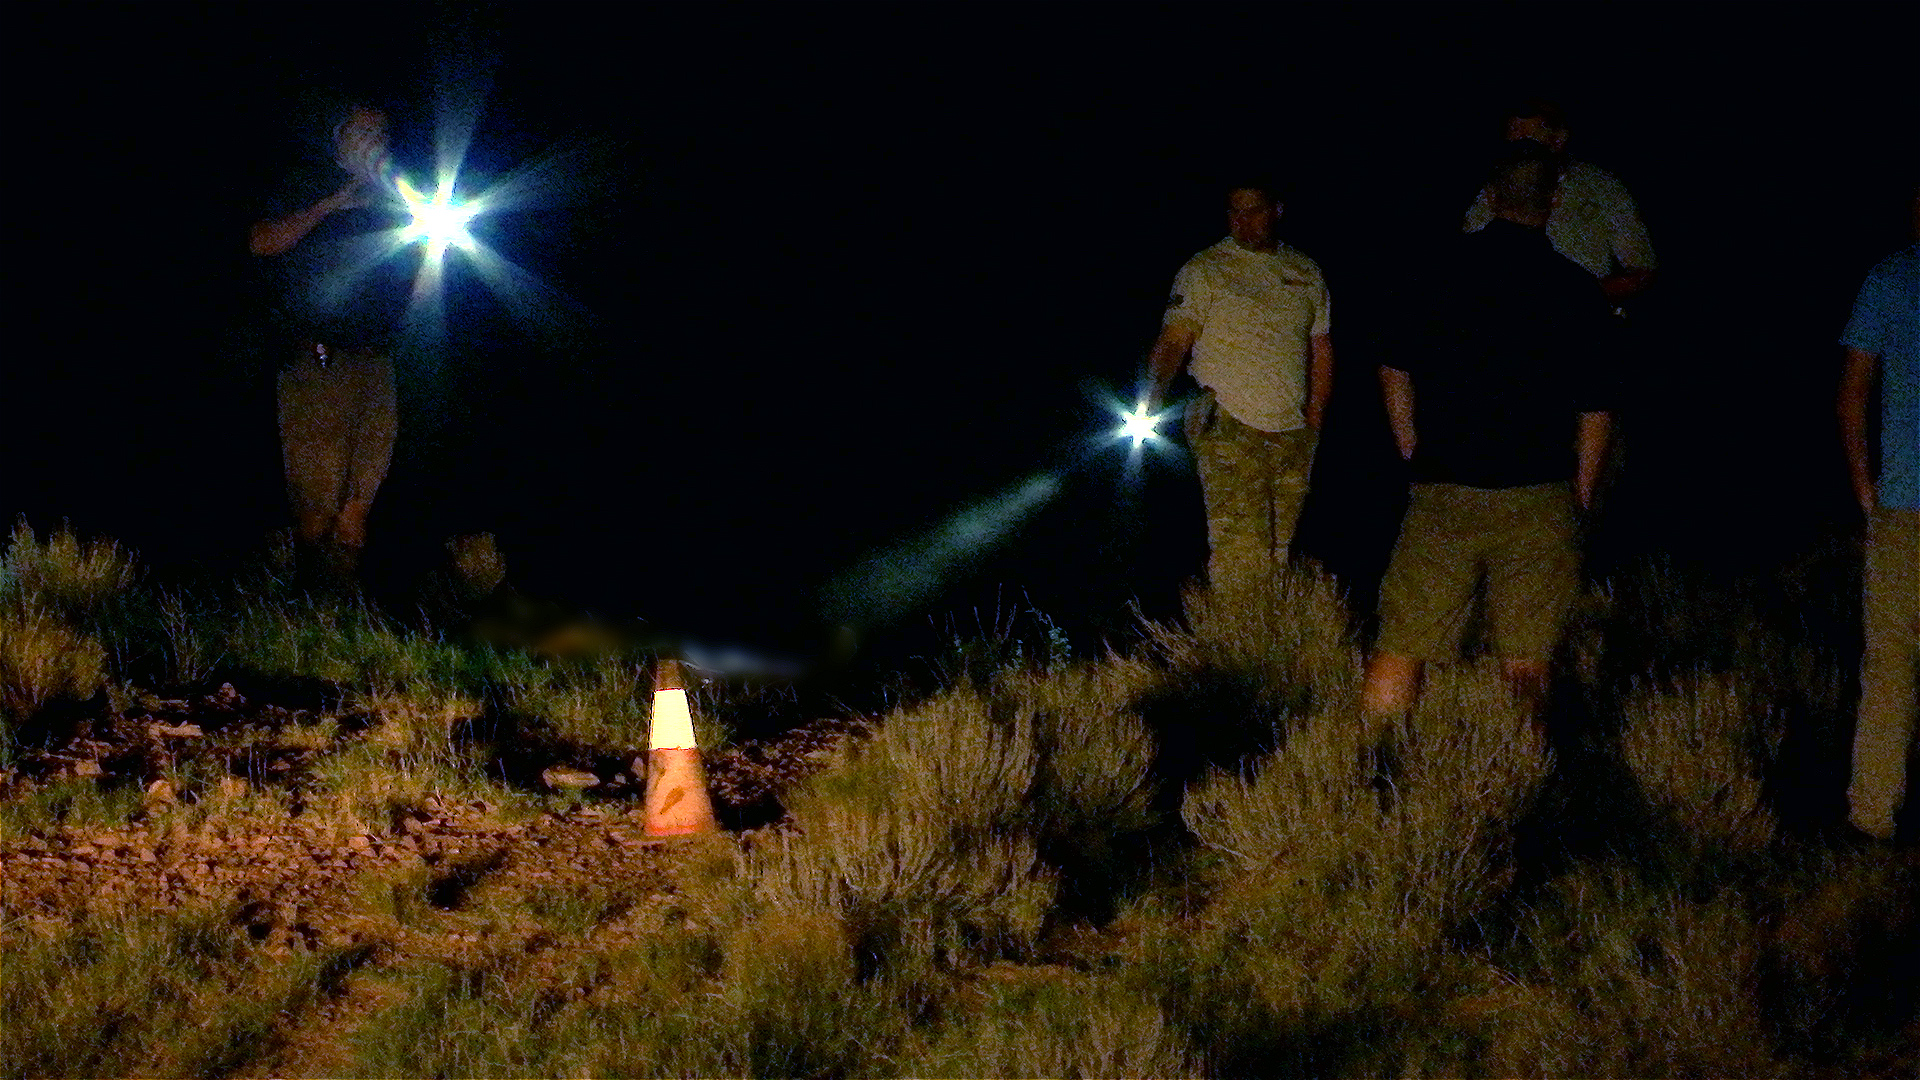 The body of missing 30-year-old David Heisler was found by a Bureau of Land Management geologist in the Mt. Trumbull region of the Arizona Strip, Mohave County, Arizona, Aug. 18, 2016 | Photo by Michael Durrant, St. George News